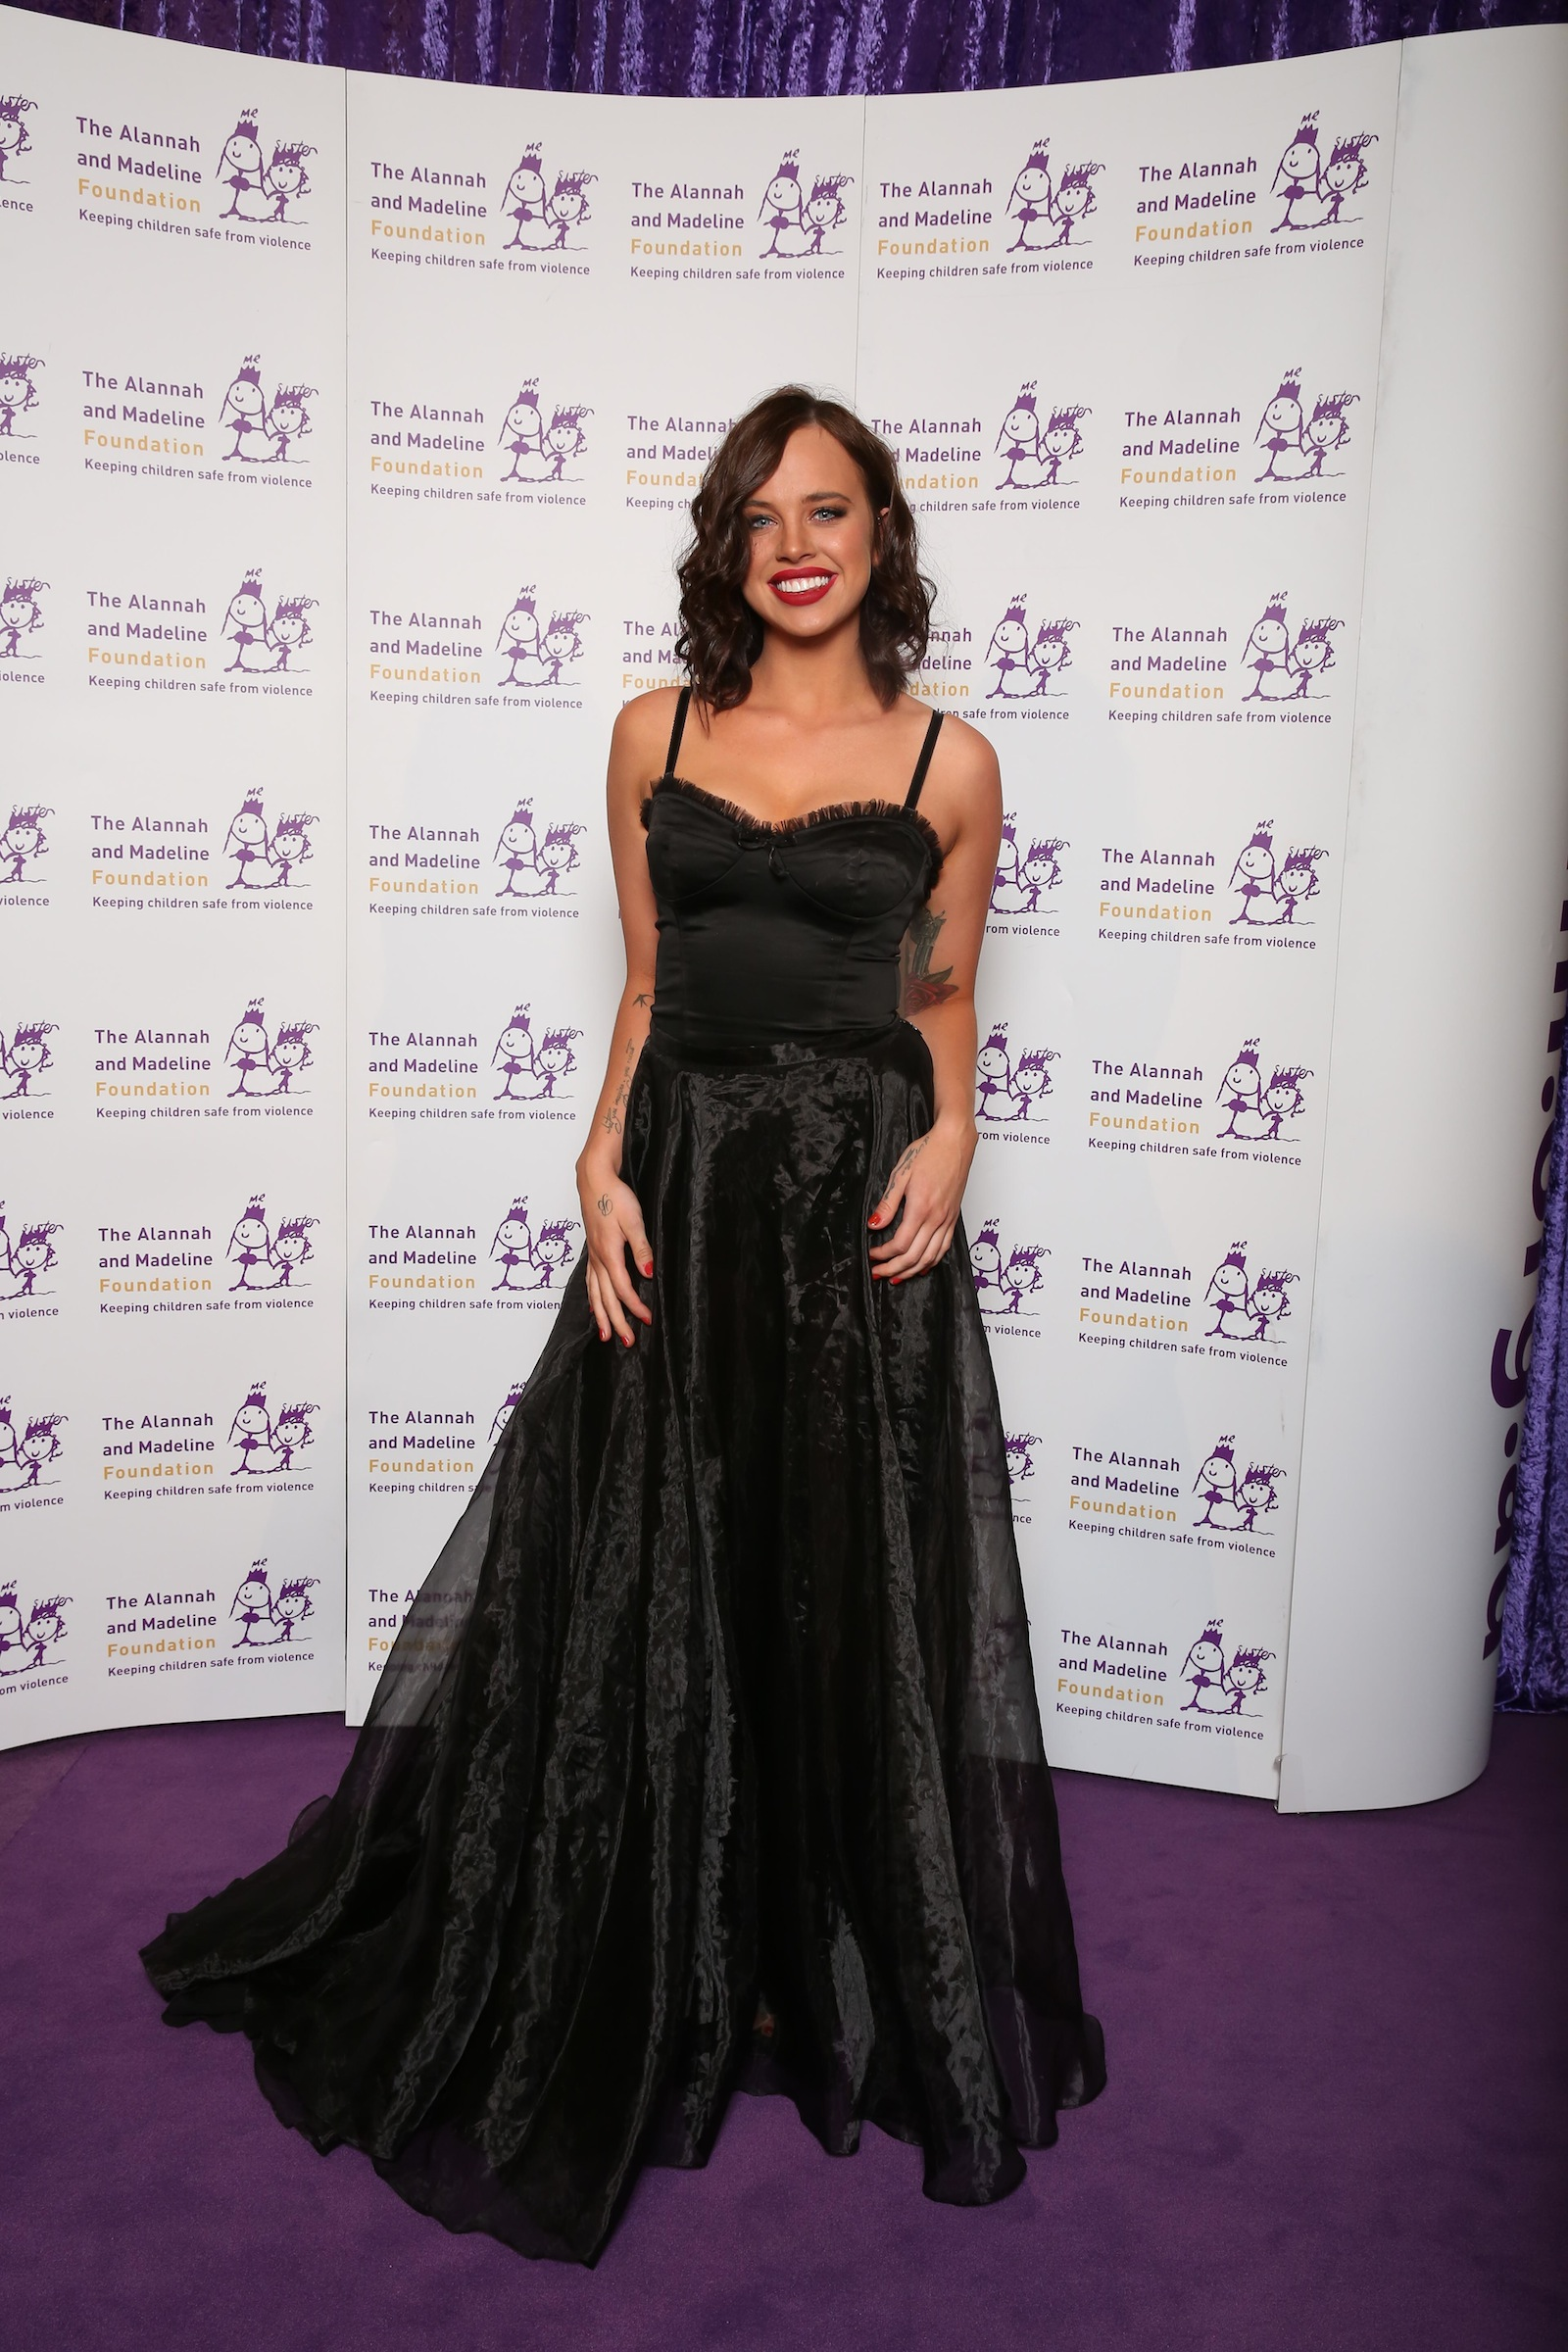 starry-starry-night-gala-ball-2015-bonnie-anderson.jpg